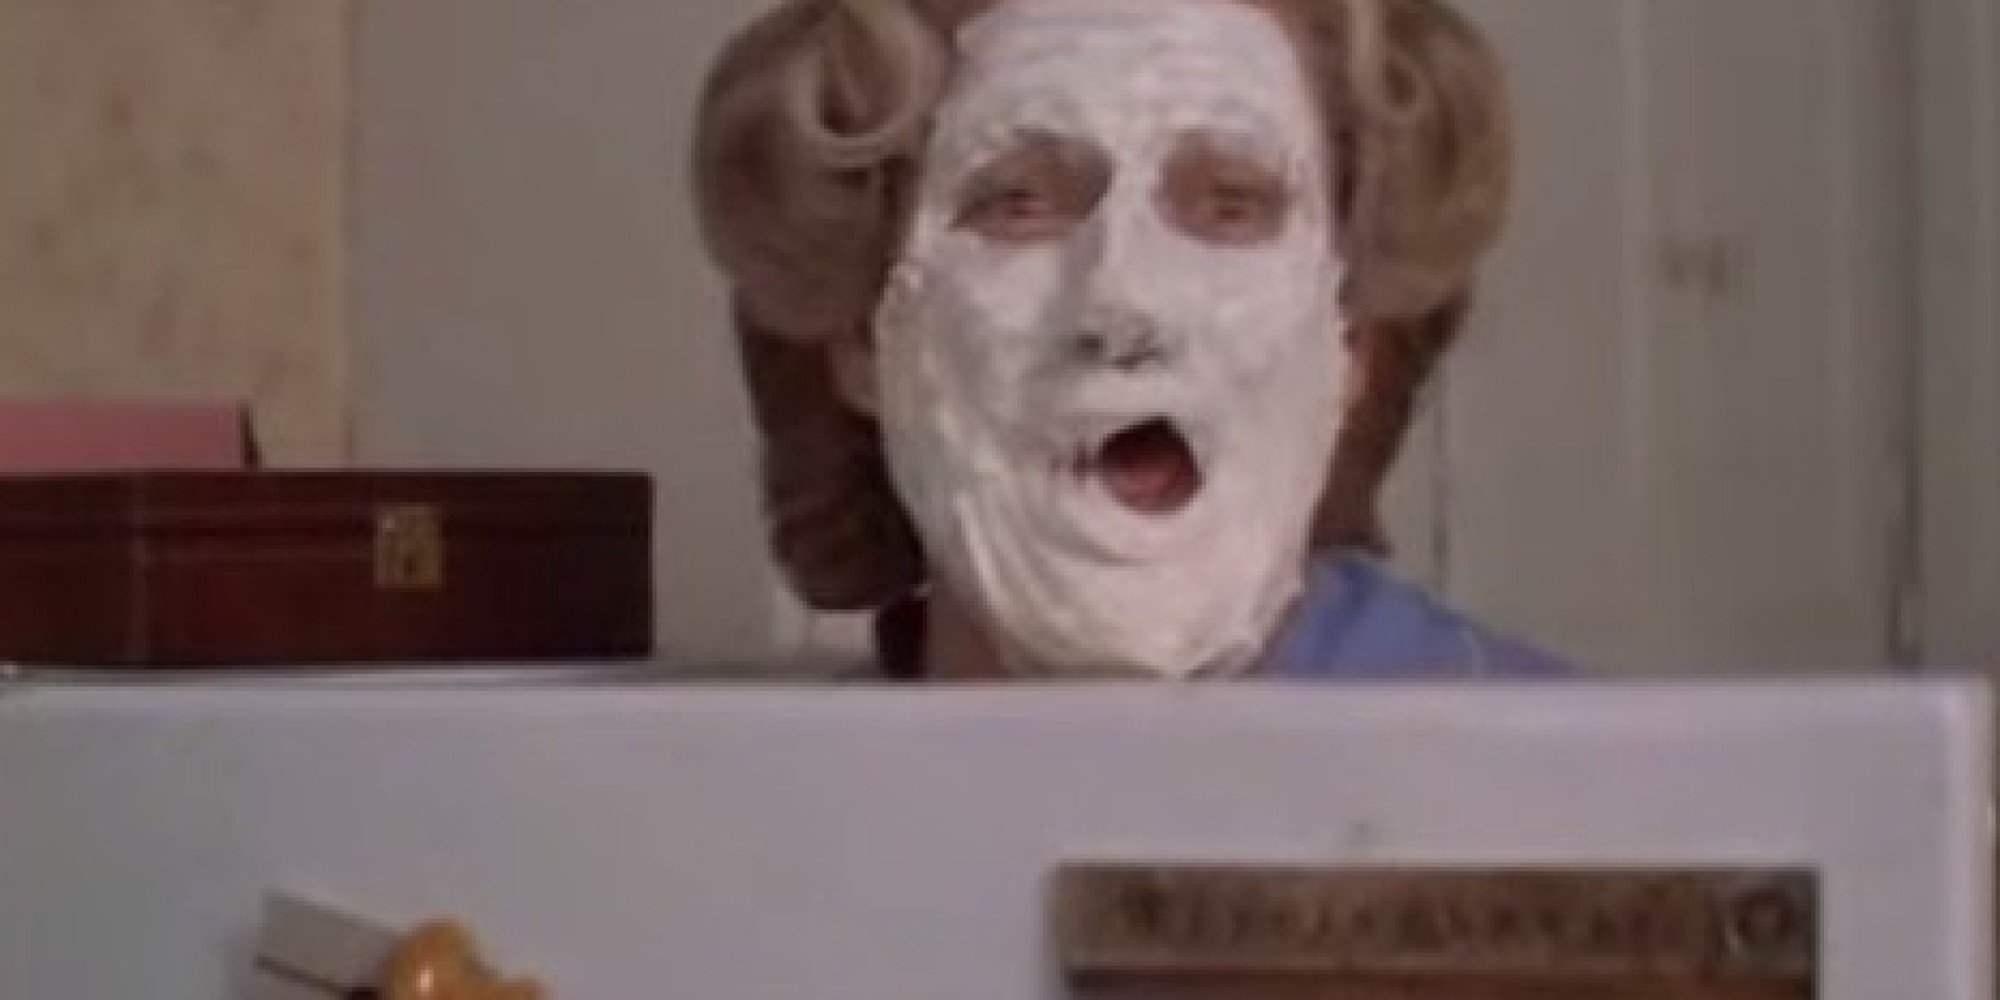 Doubtfire Face Aims To Raise Awareness For Suicide